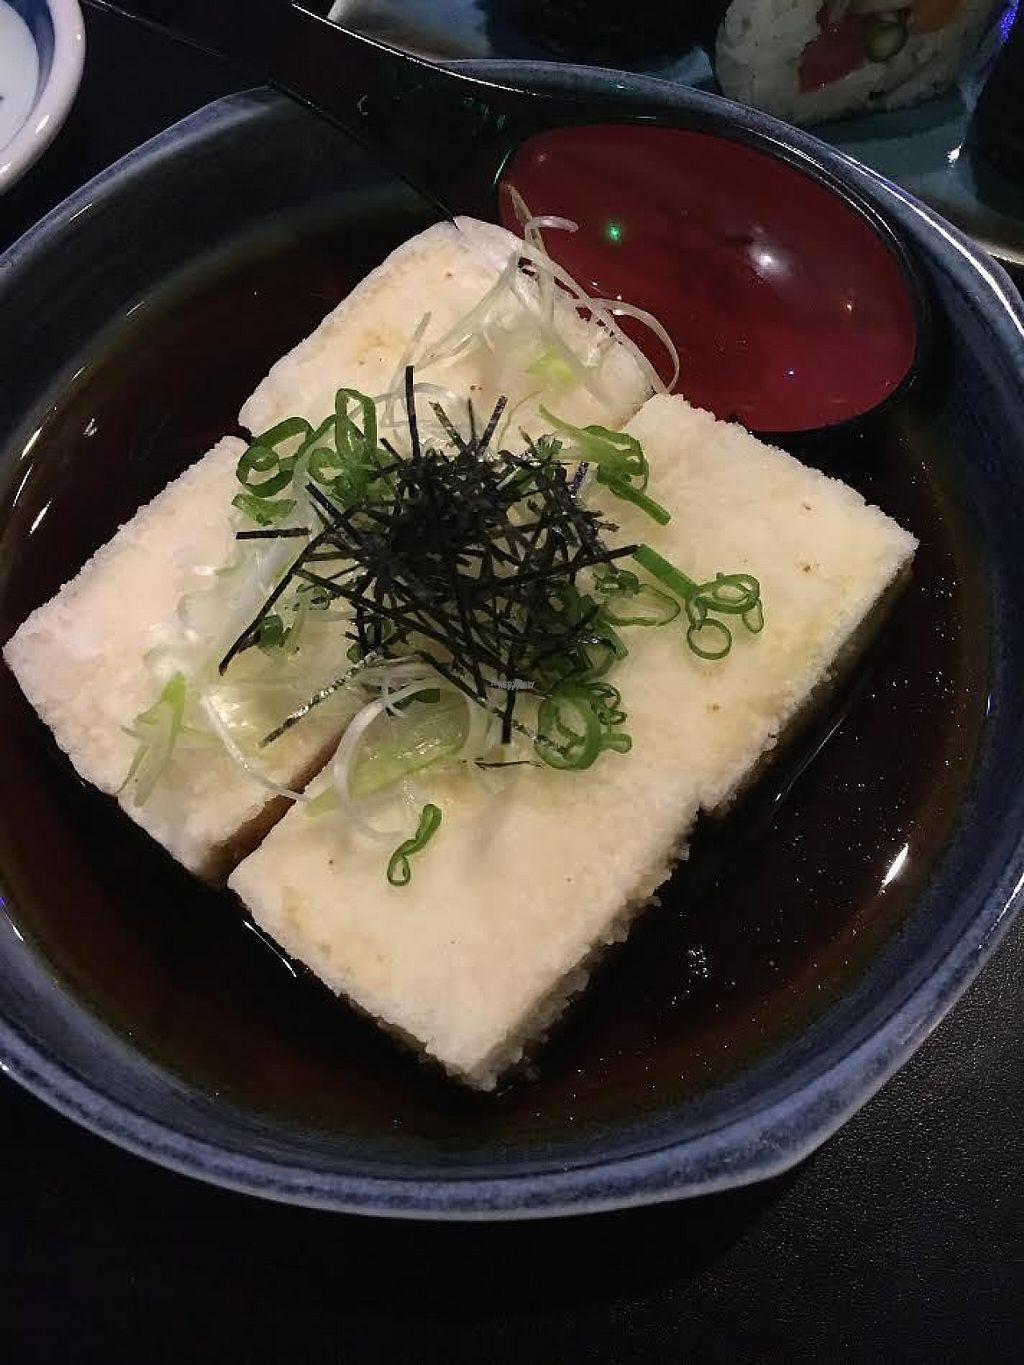 "Photo of Midori's Floating World Cafe  by <a href=""/members/profile/Laura1G2C"">Laura1G2C</a> <br/>Agedashi Tofu <br/> February 11, 2017  - <a href='/contact/abuse/image/12770/225401'>Report</a>"